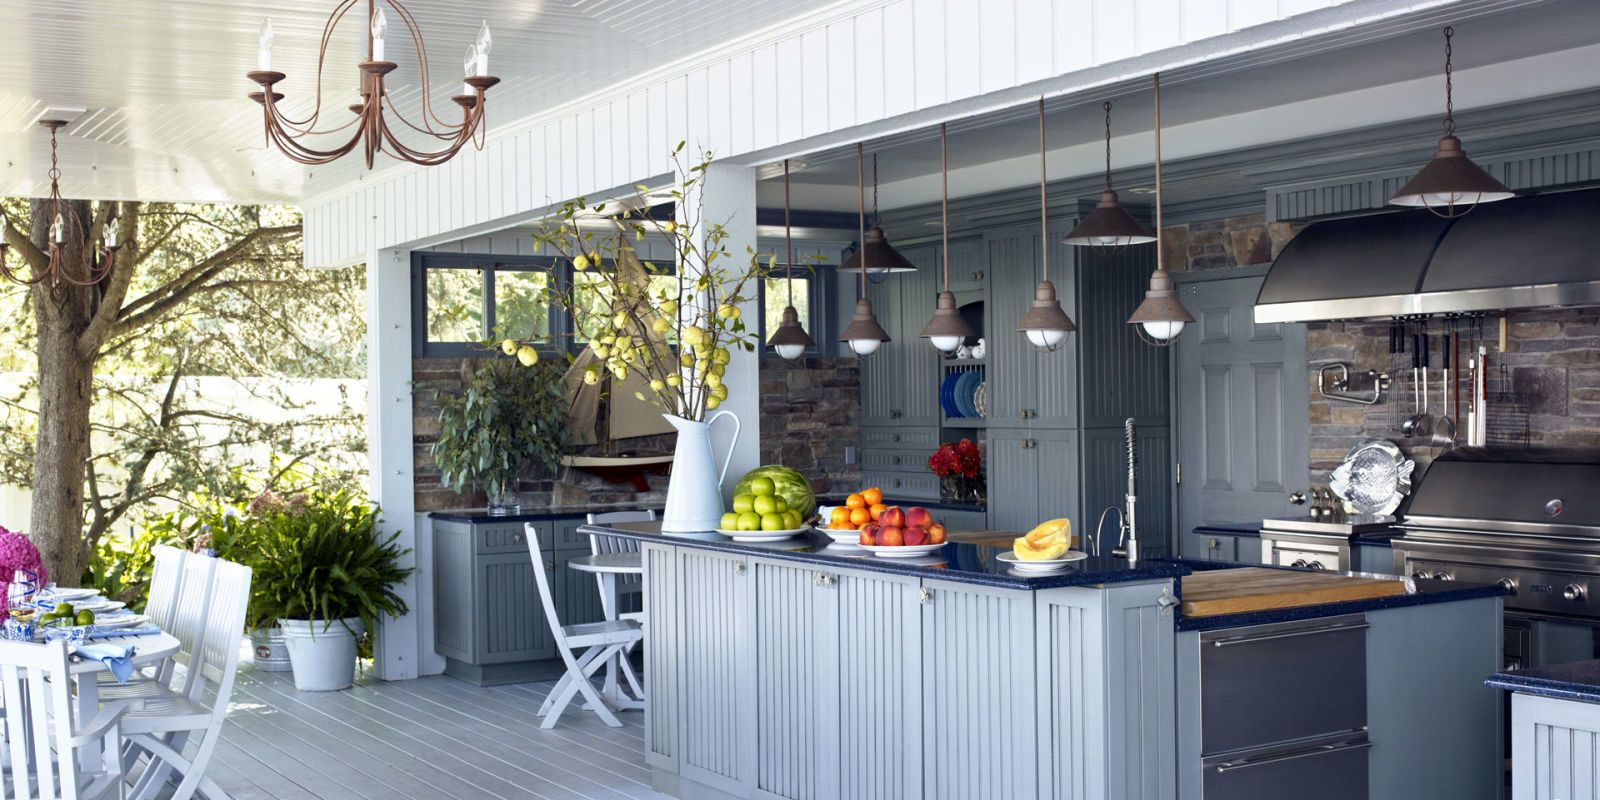 Charmant Blue Outdoor Kitchen